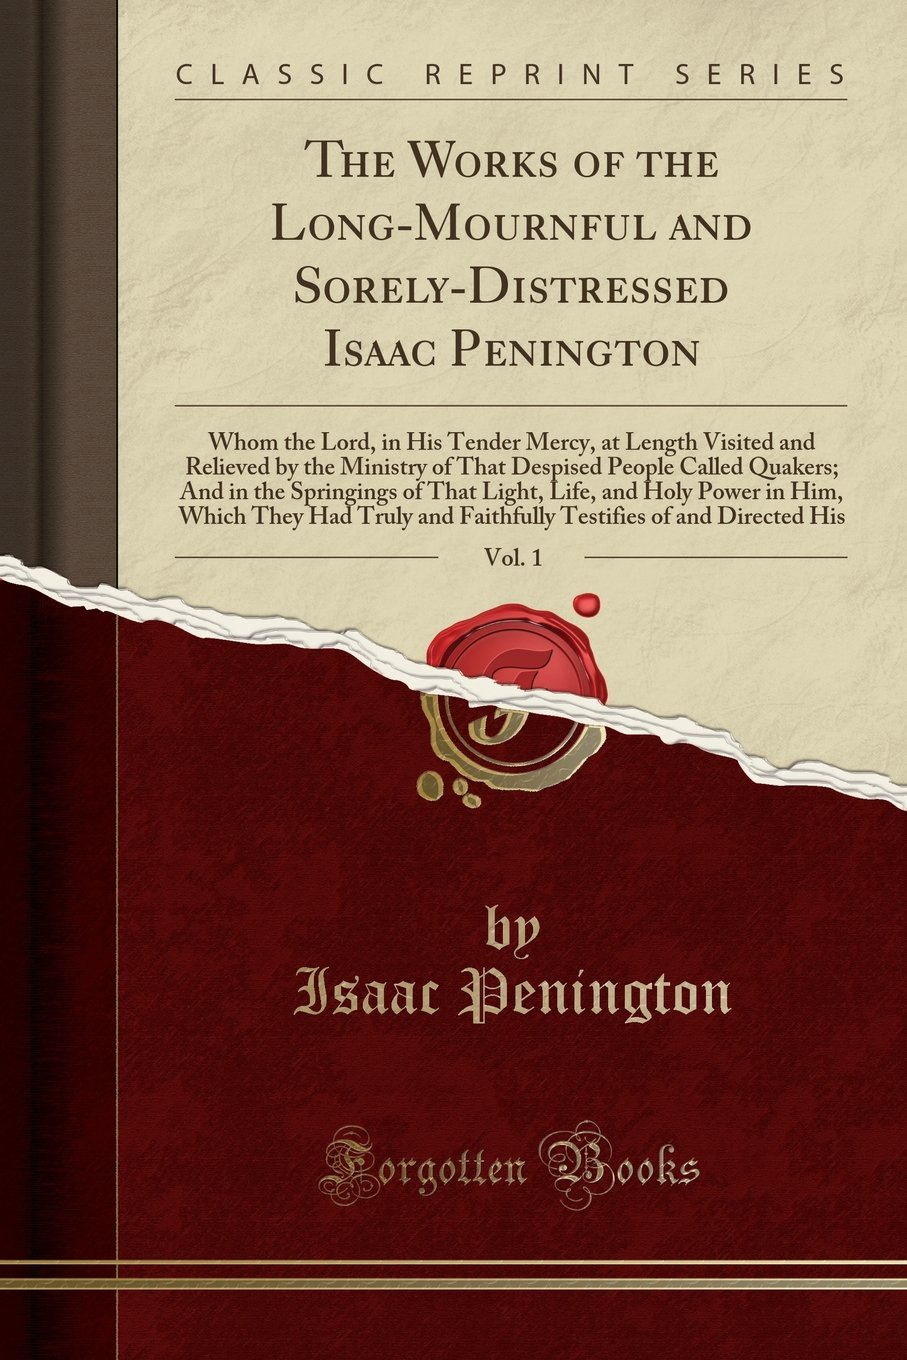 Download The Works of the Long-Mournful and Sorely-Distressed Isaac Penington, Vol. 1: Whom the Lord, in His Tender Mercy, at Length Visited and Relieved by ... Springings of That Light, Life, and Holy Po ebook